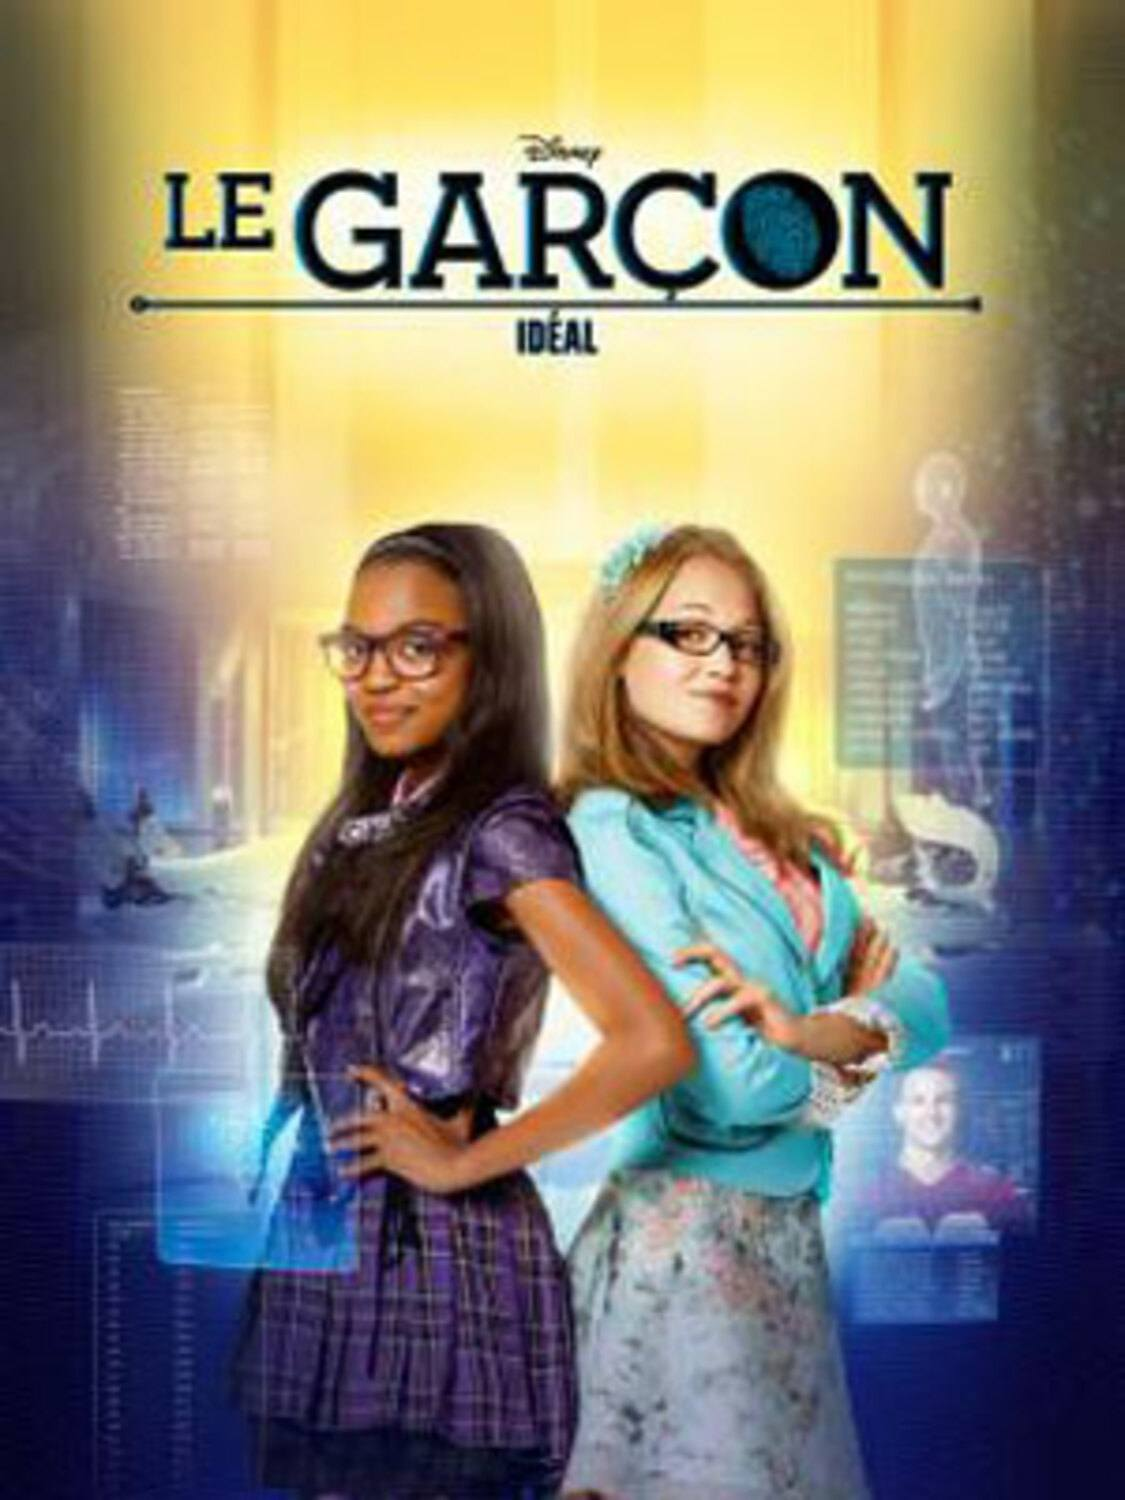 affiche poster garçon idéal how build better boy disney channel